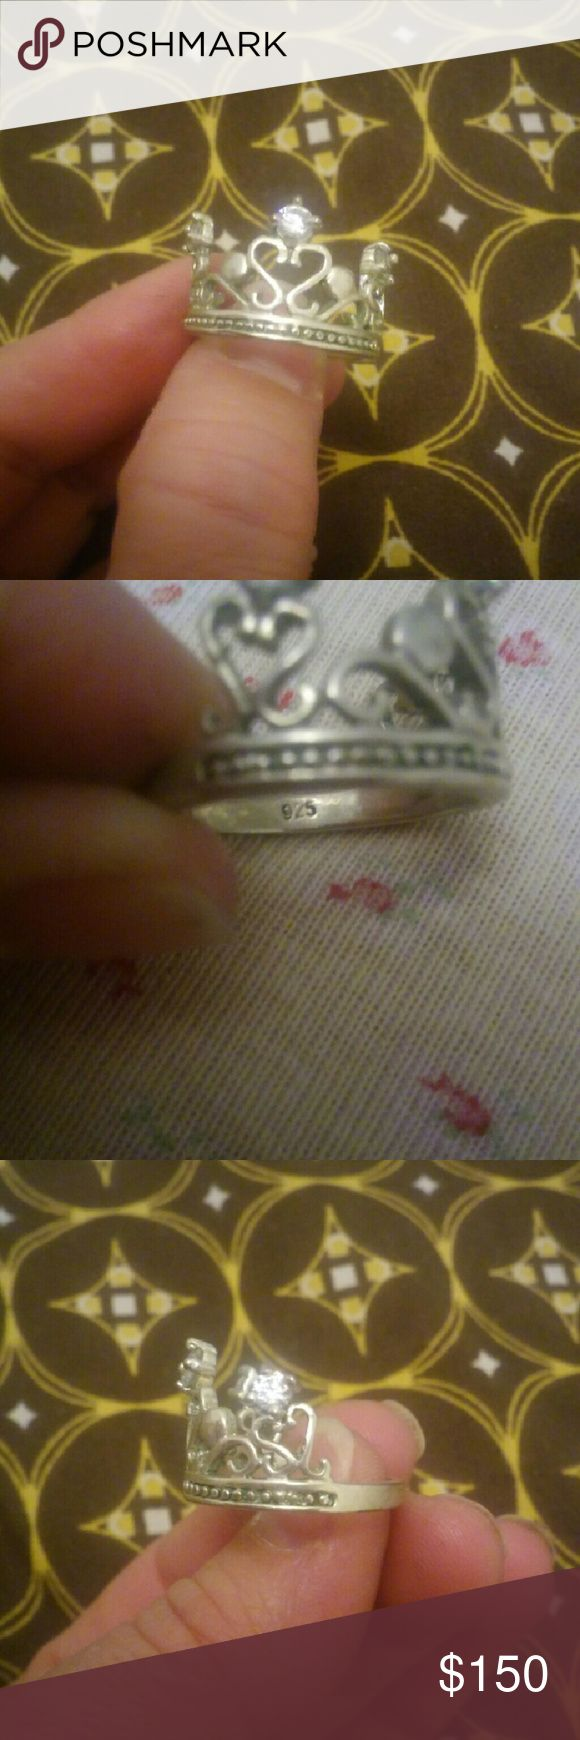 925 princess crown ring 925 princess crown ring TV 100 Jewelry Rings